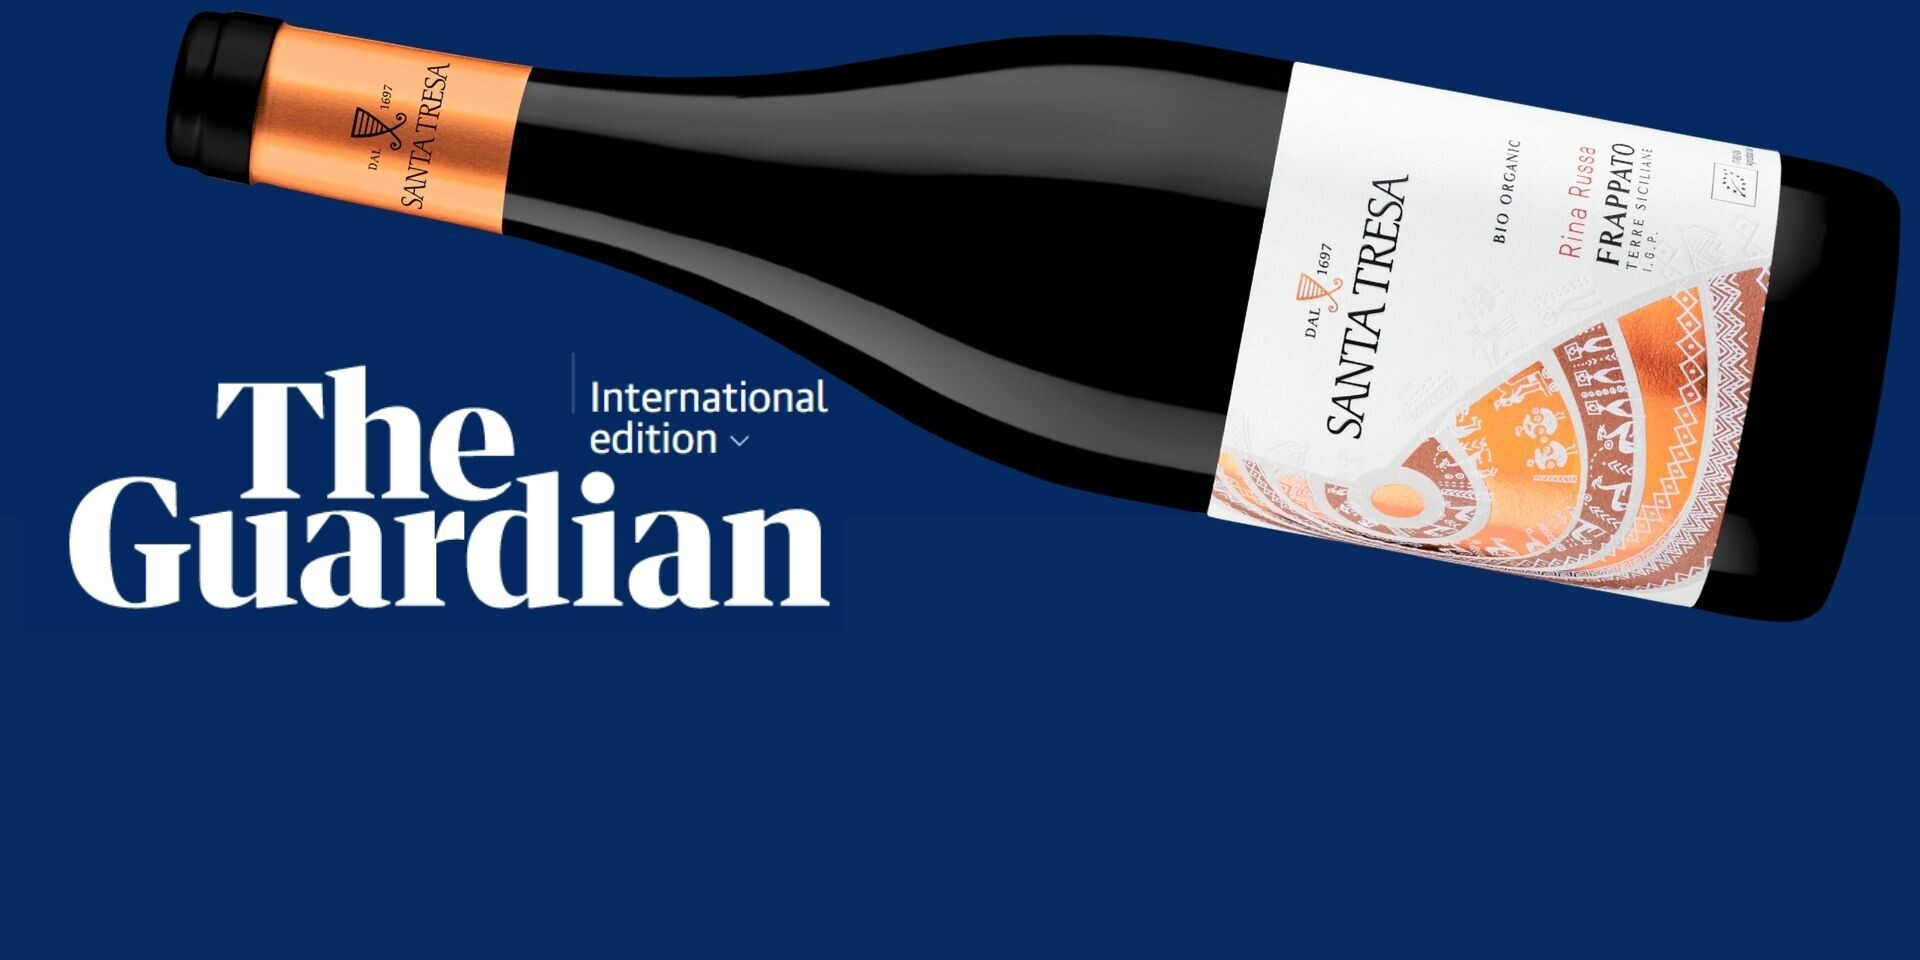 The Guardian - The finer side of Sicilian wine